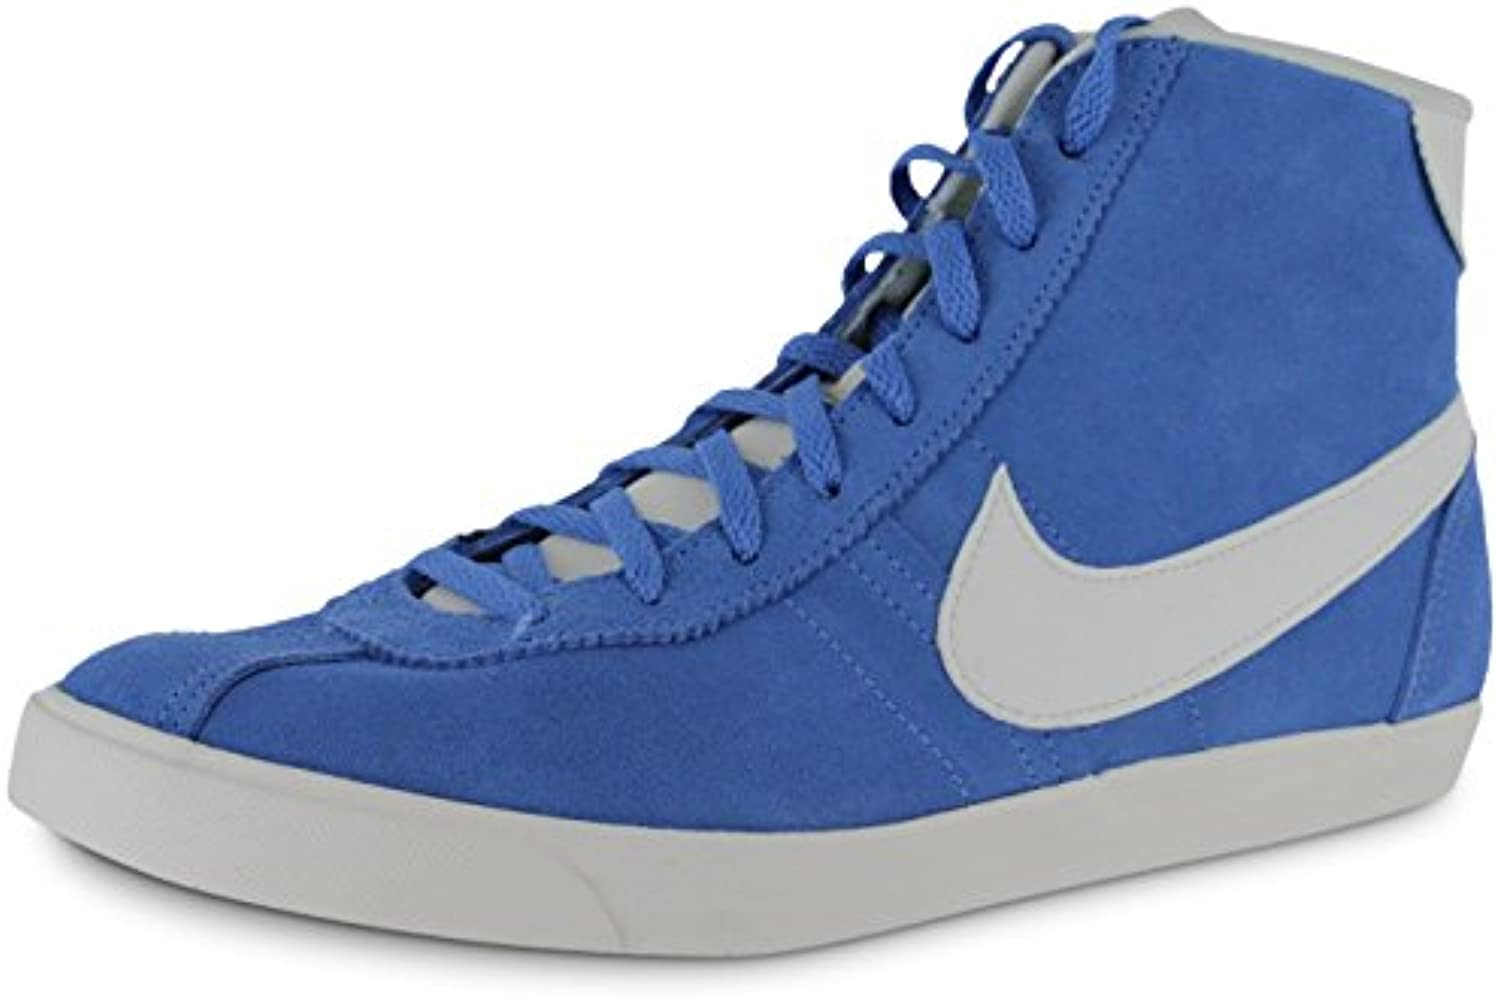 Nike Wmns Bruin Lite MID 543259 401 Mujer Moda Guantes